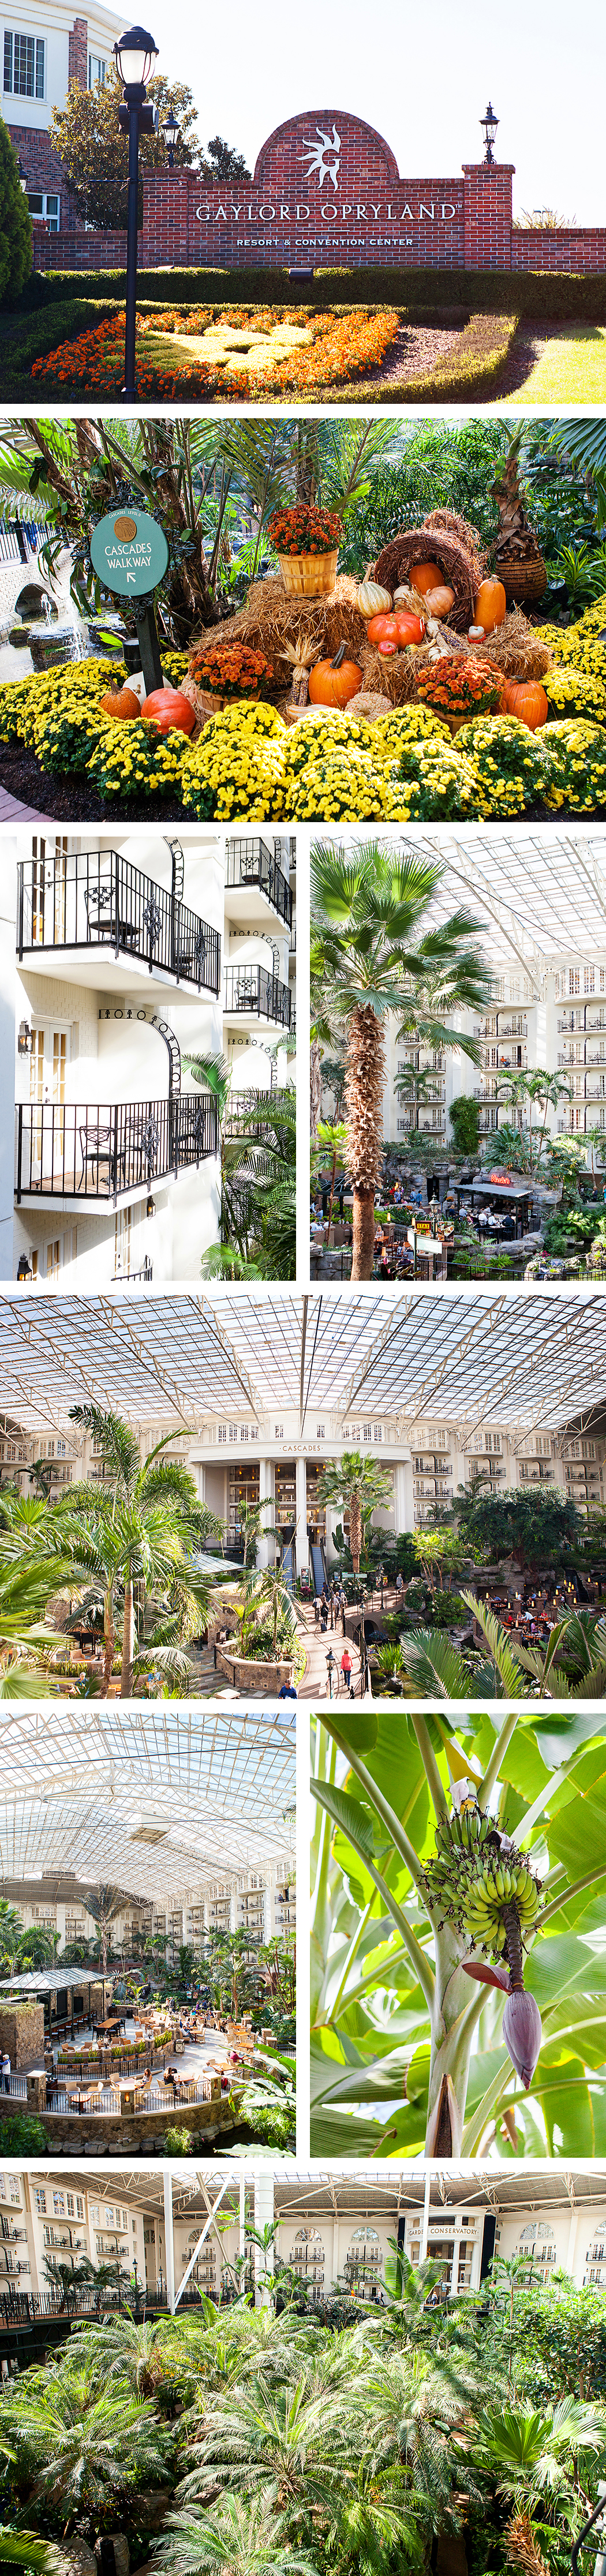 Gaylord Opryland Resort & Convention Center | Nashville, Tennessee